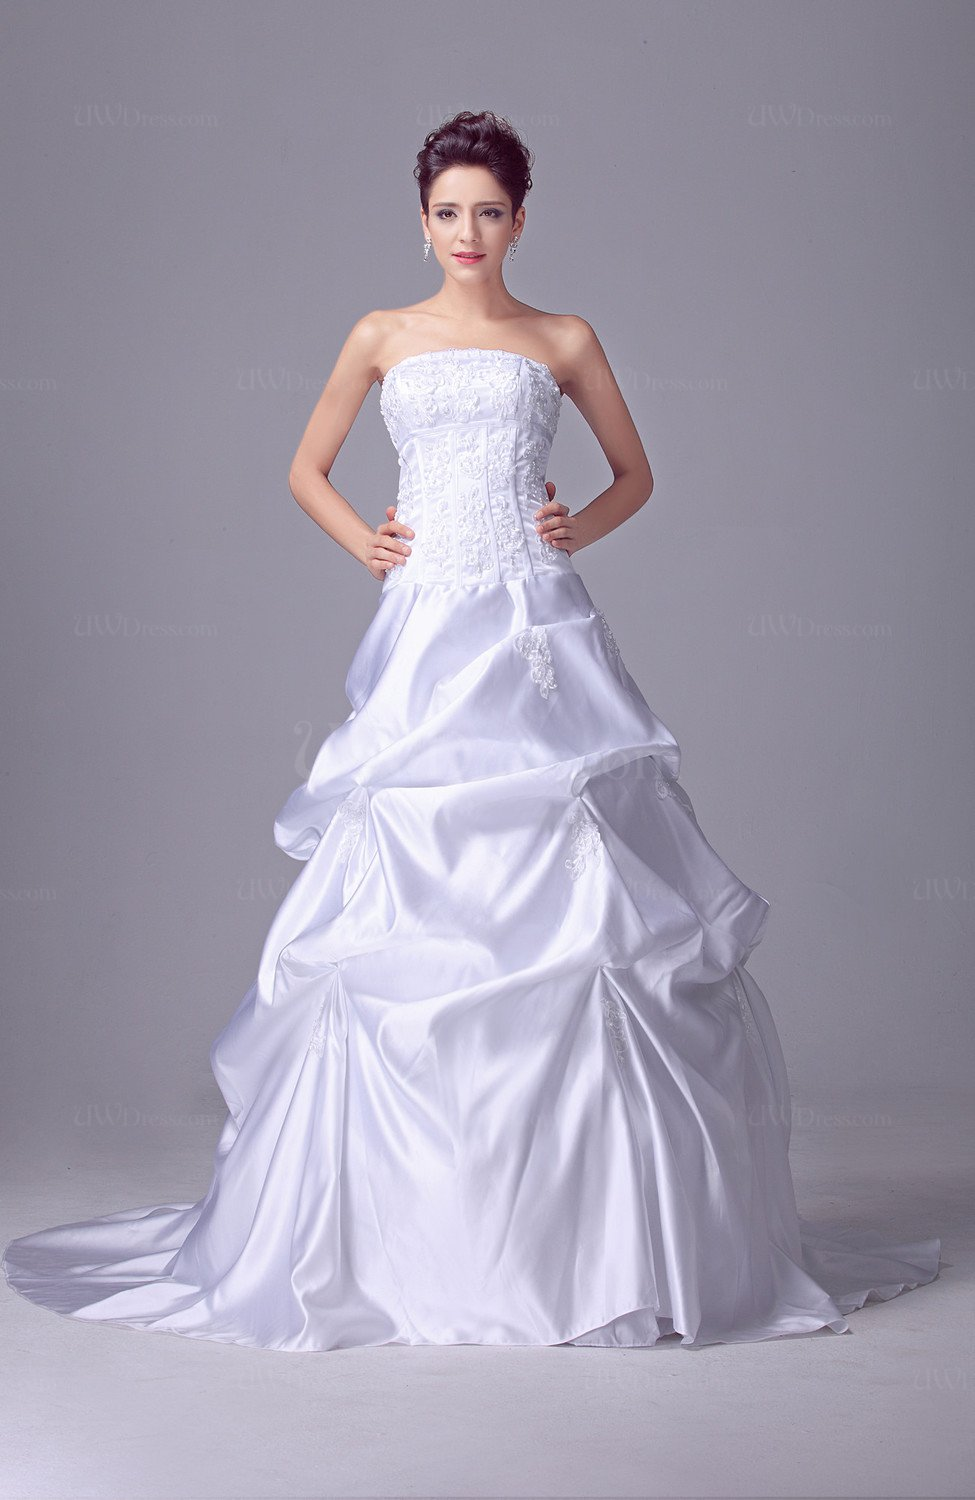 Disney Princess Bridal Gowns Luxury Sleeveless Open Back Modern Fall ...